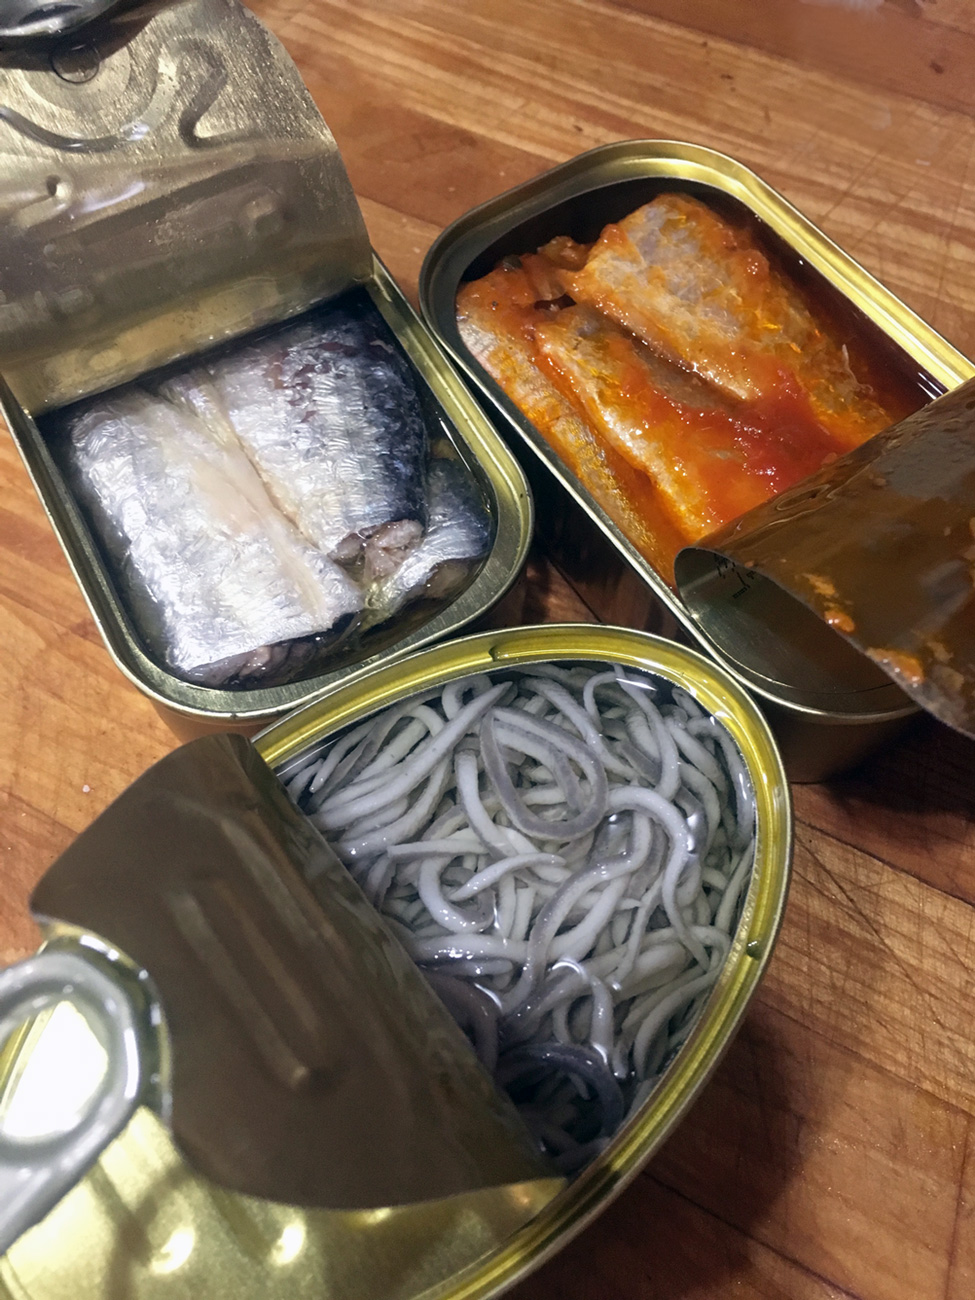 These Spanish fishes are canned at peak freshness and are absolutely delicious.  Despaña carries them both in their stores and website.